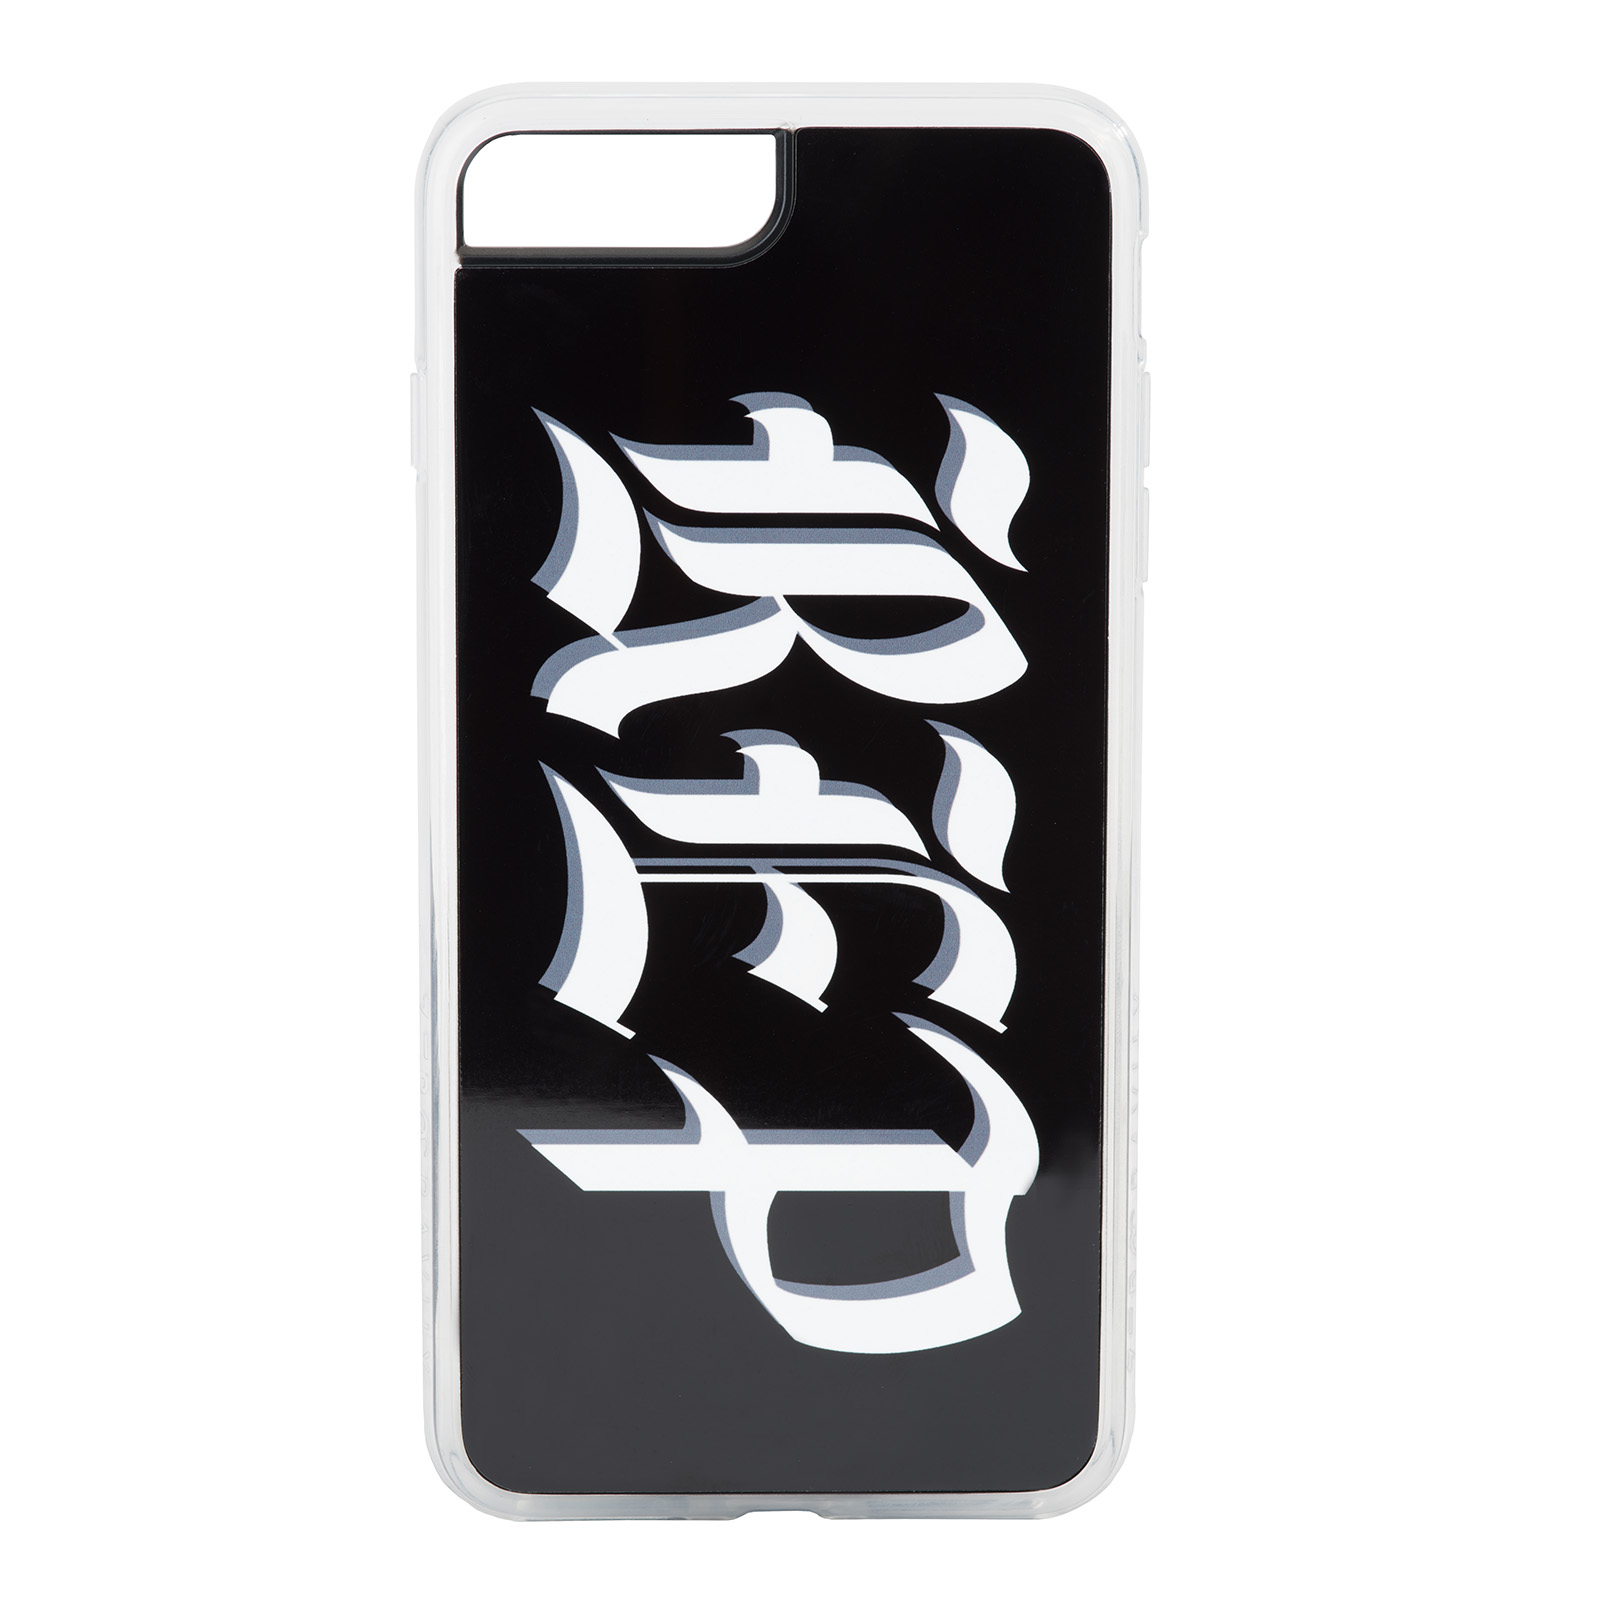 1600x1600 Black Phone Case Taylor Swift Official Online Store